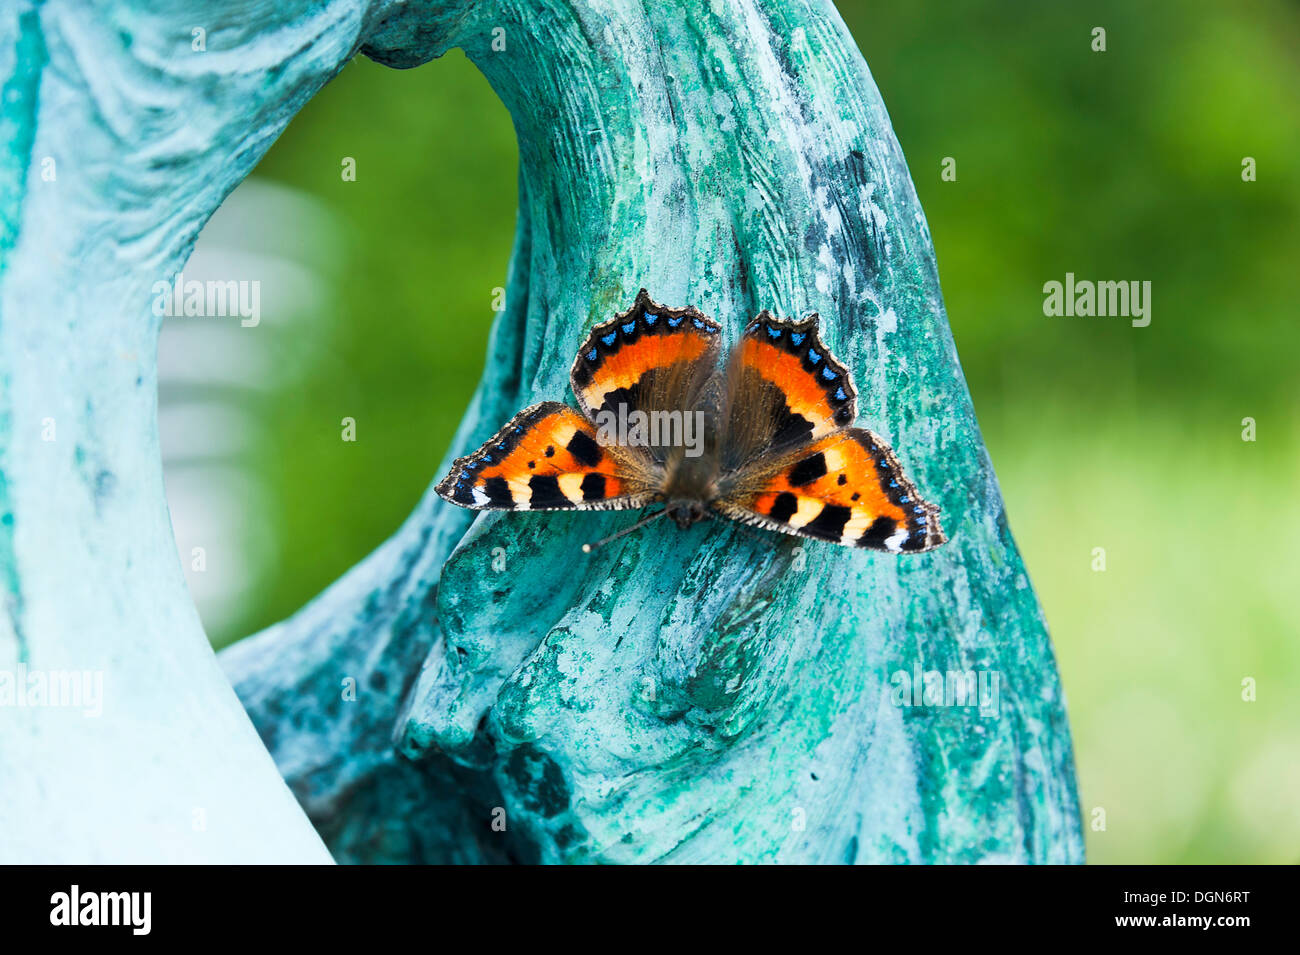 A Small Tortoiseshell Butterfly Resting on a Sculpture at Waterperry Gardens Thame Oxfordshire England United Kingdom UK - Stock Image